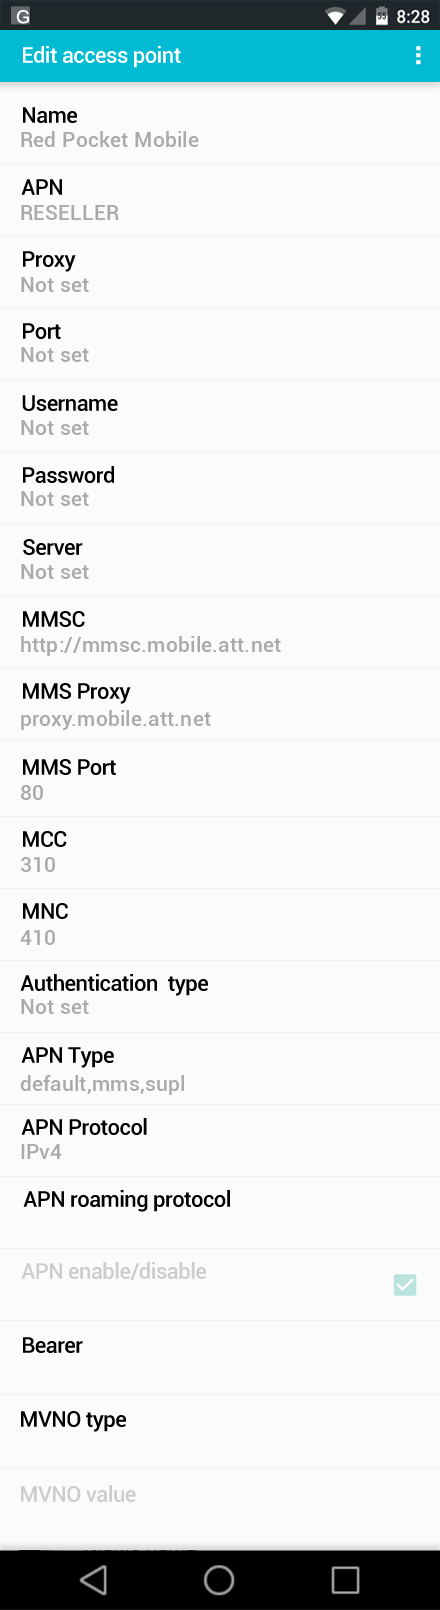 Red Pocket Mobile  APN settings for Android screenshot